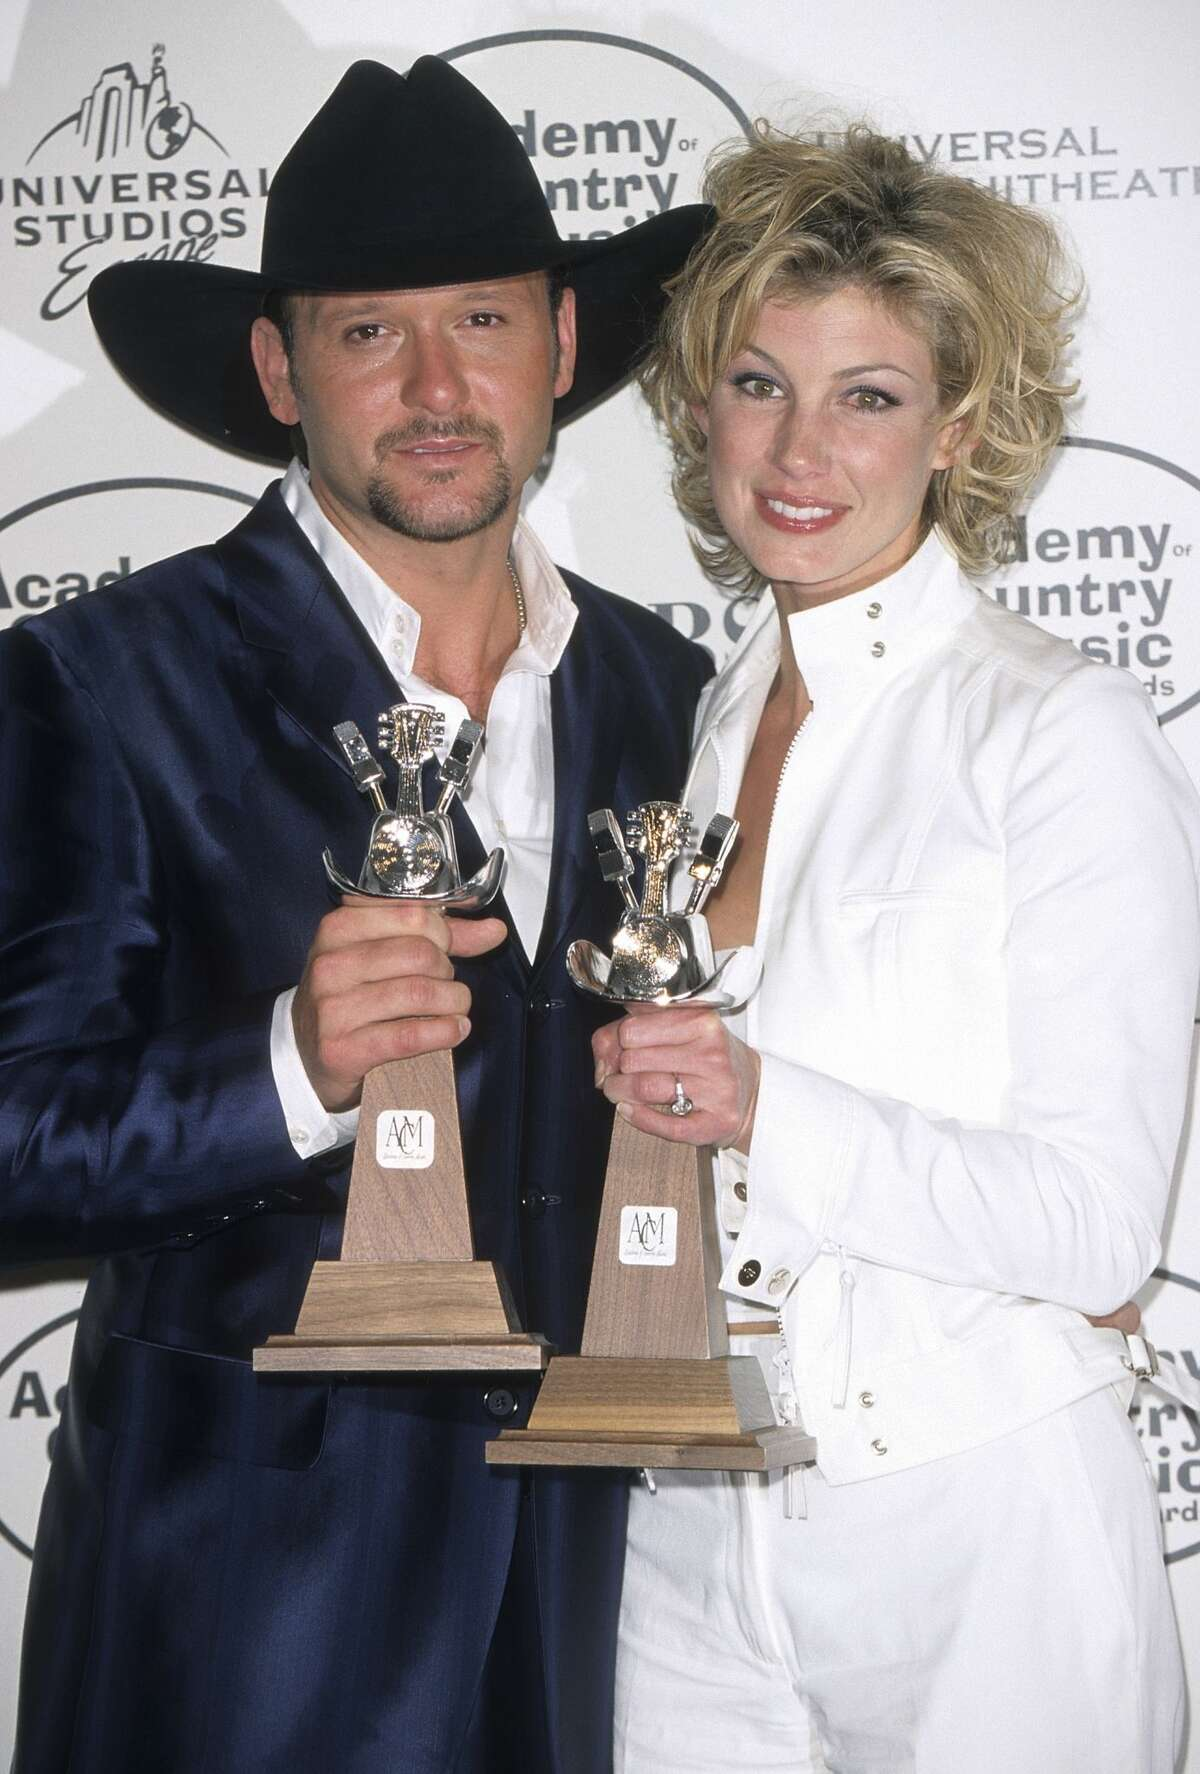 Tim McGraw and Faith Hill are undoubtedly a country music power couple. But are they a duo? In Billboard's review of a recent Soul 2 Soul date, Denise Warner makes the case that they are stronger together than apart. She wrote: